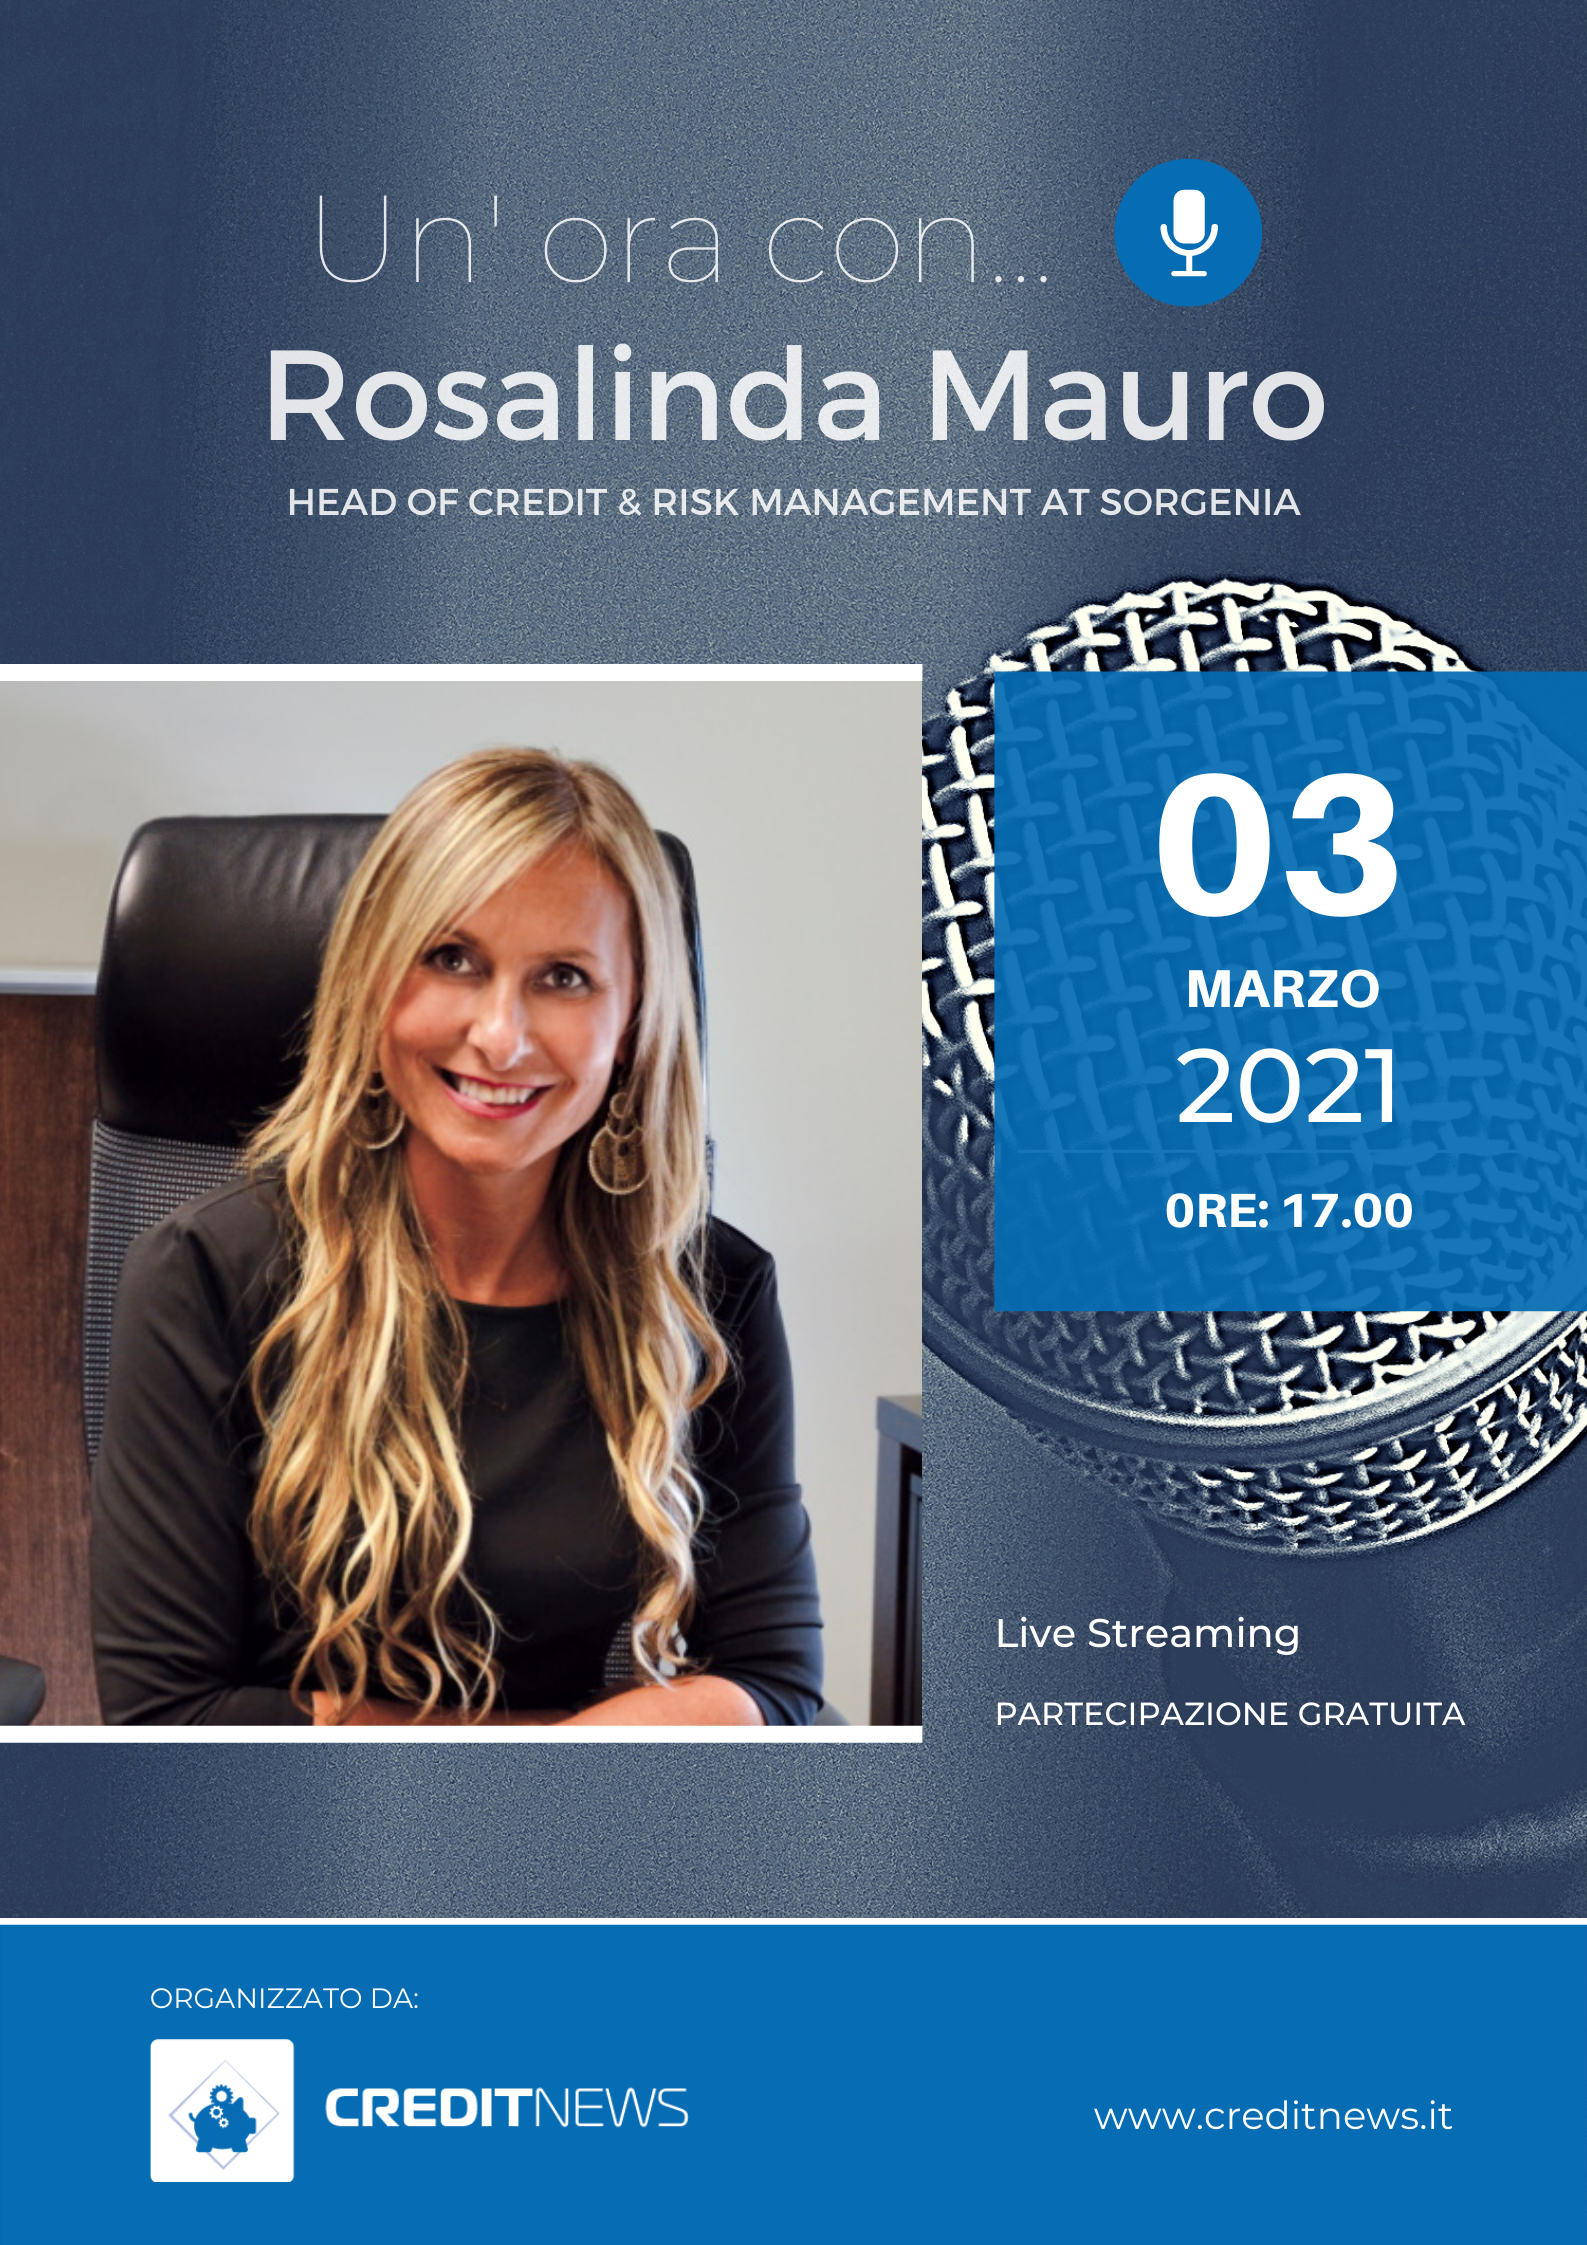 Un'ora con… Rosalinda Mauro, Head of Credit & Risk management di Sorgenia